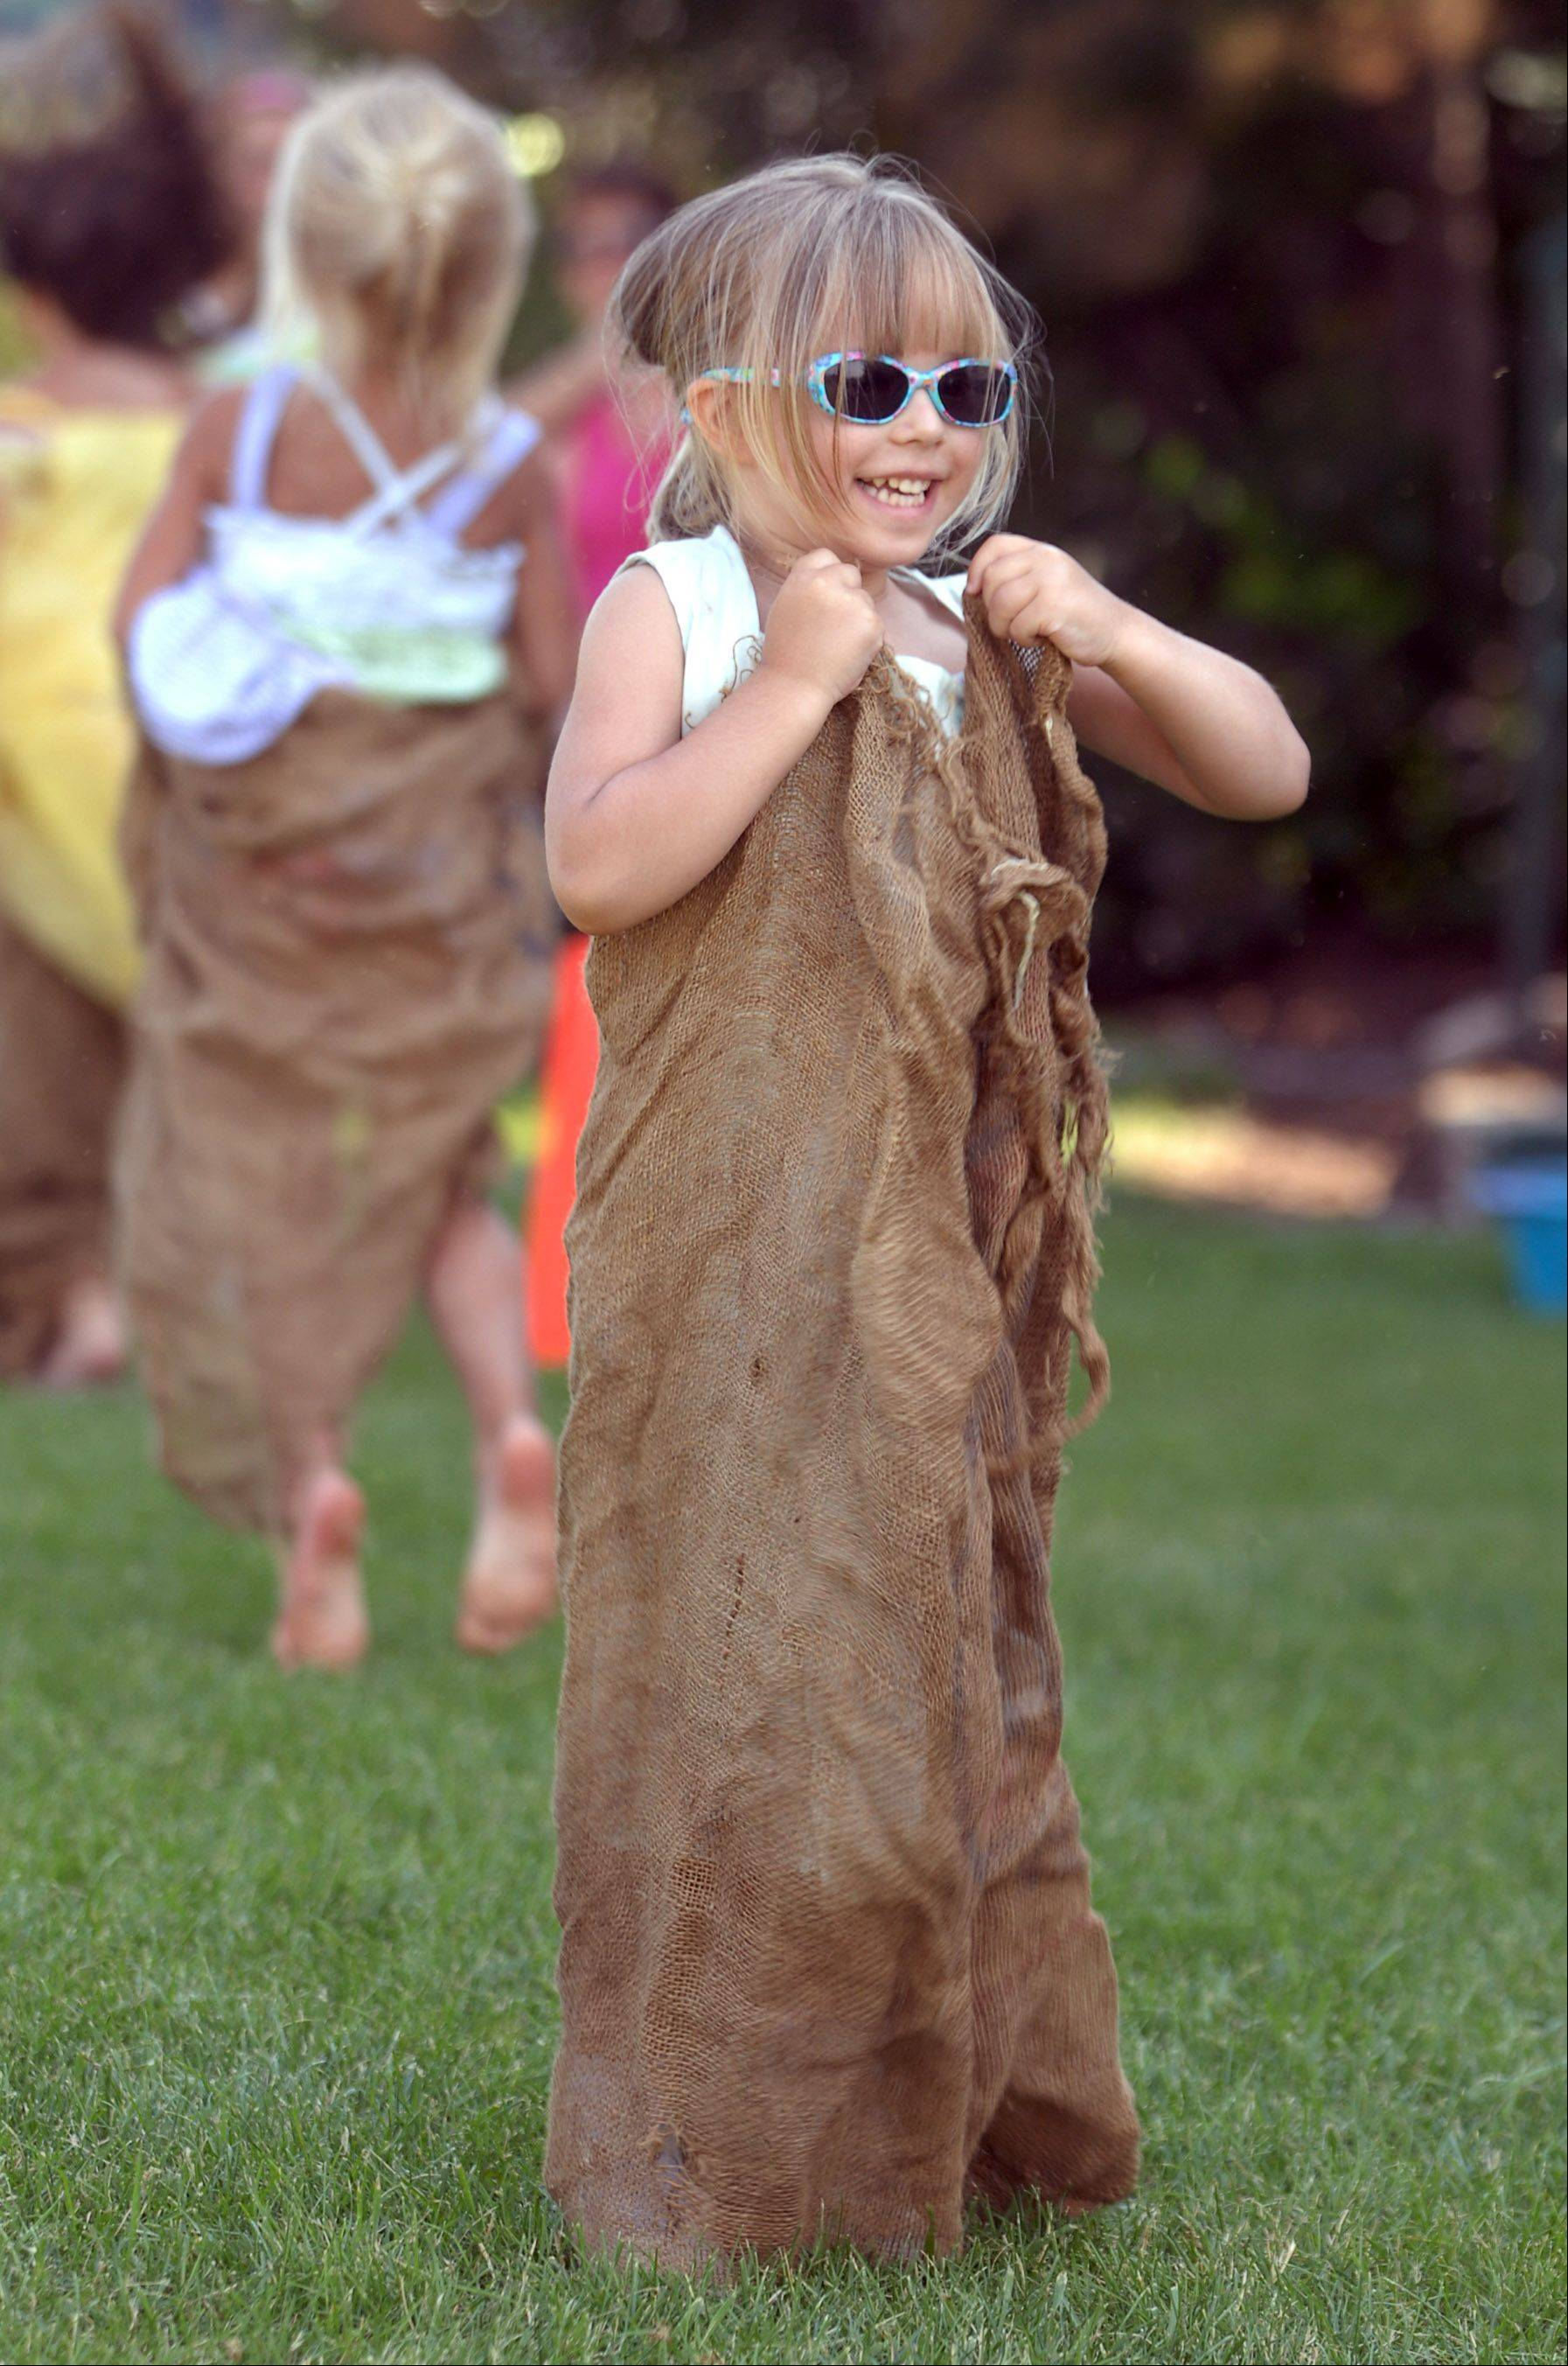 Erin Pasdiora, 4 of Antioch, participates in sack races Thursday afternoon during the first day of Antioch's Taste of Summer. The event continues through Sunday with food, rides, games and entertainment.